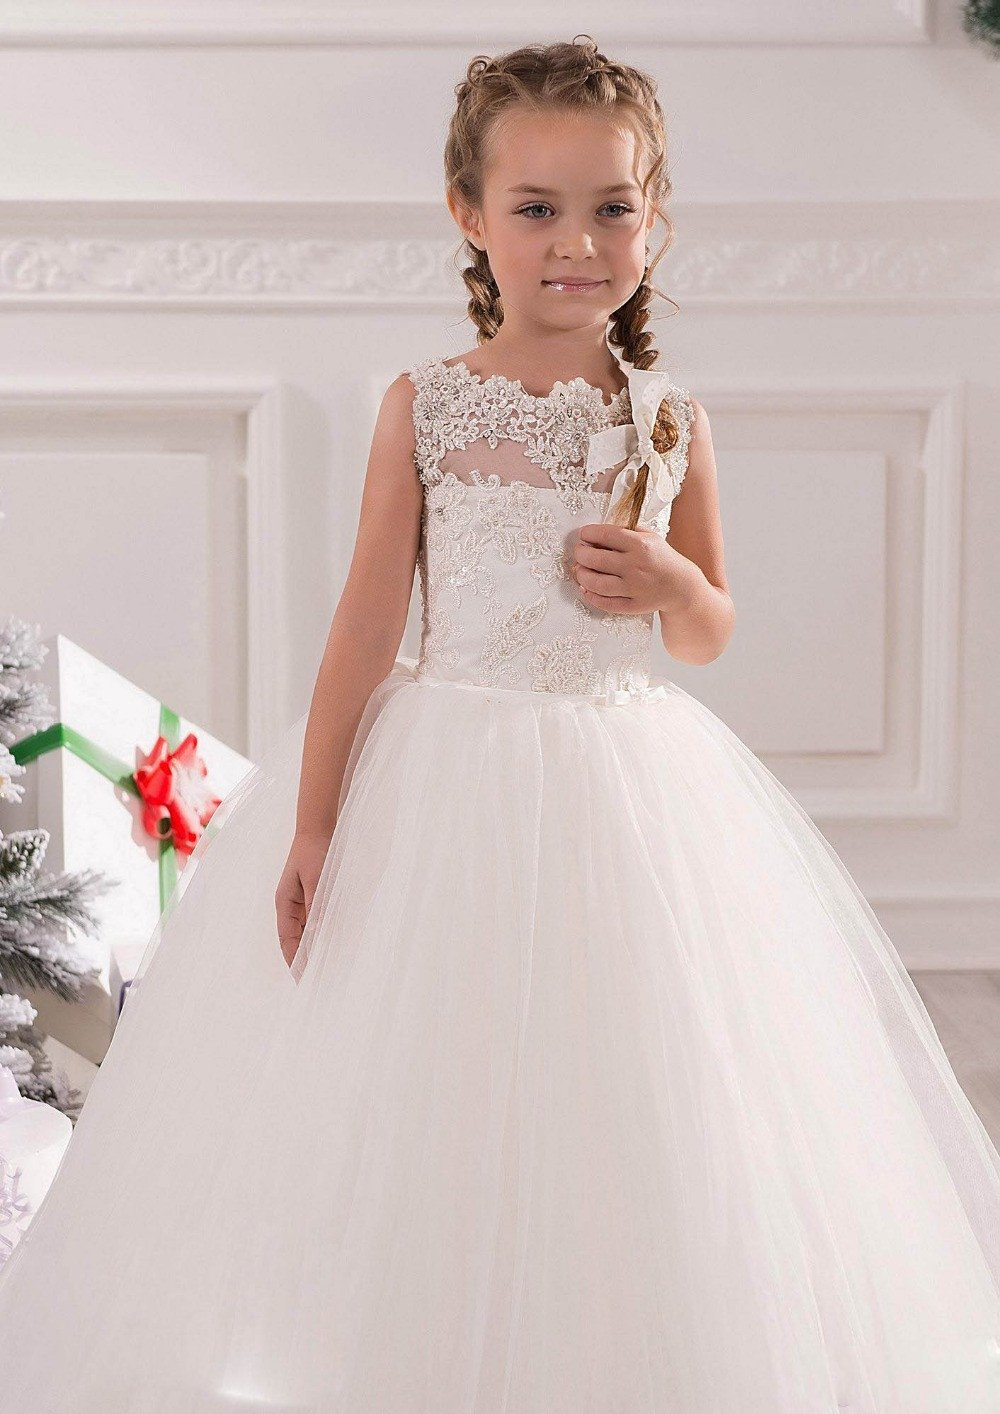 2017 Little White Lace Ball Gown Flower Girl Dresses Baby Kids ...